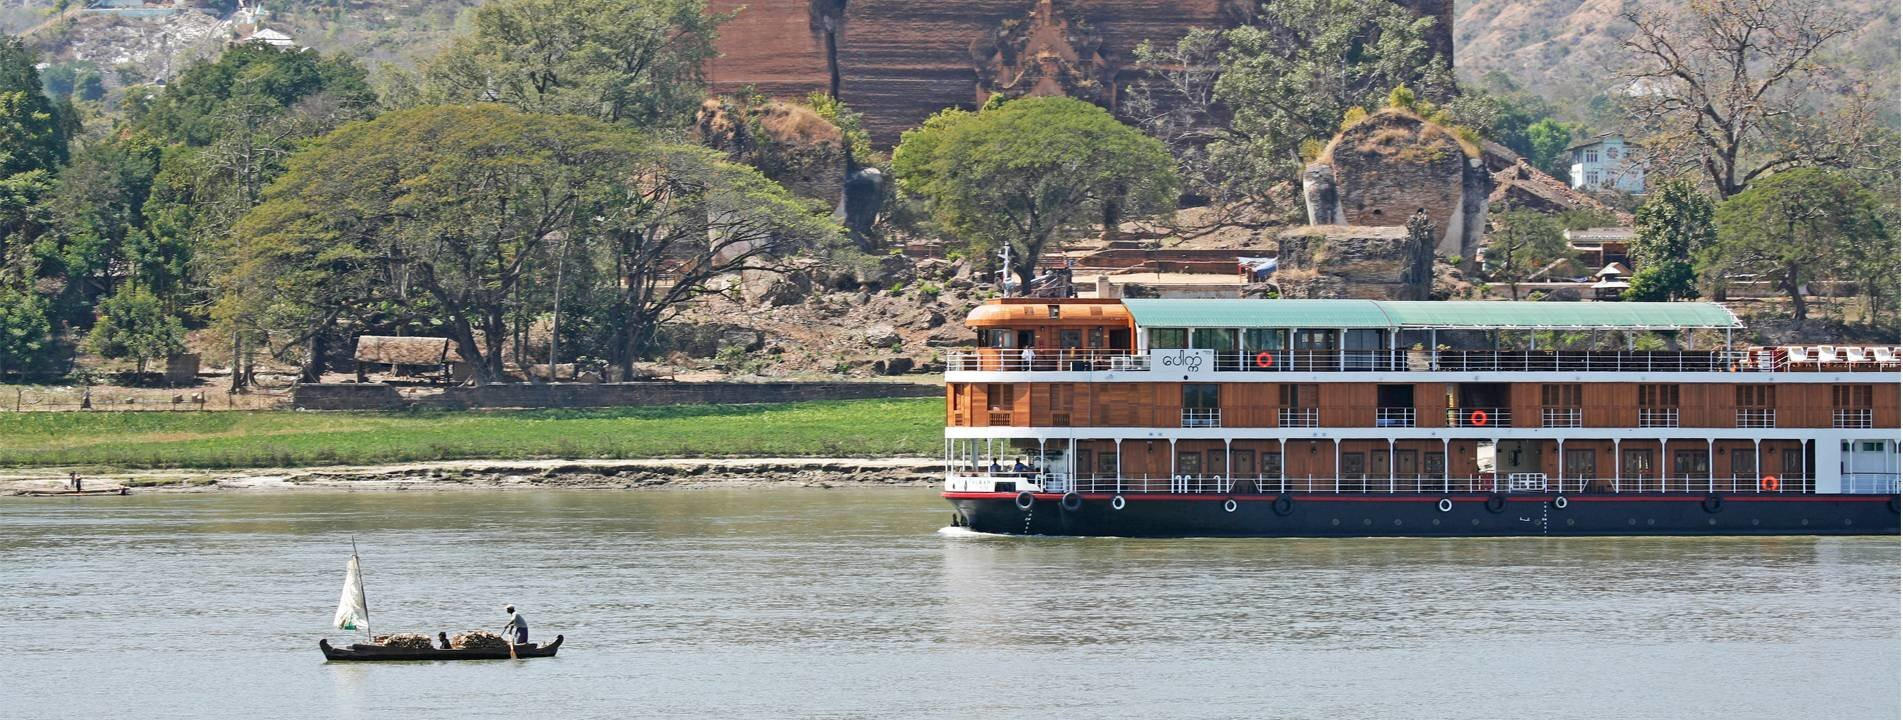 Cruising from Mandalay to Bagan on the Irrawaddy River